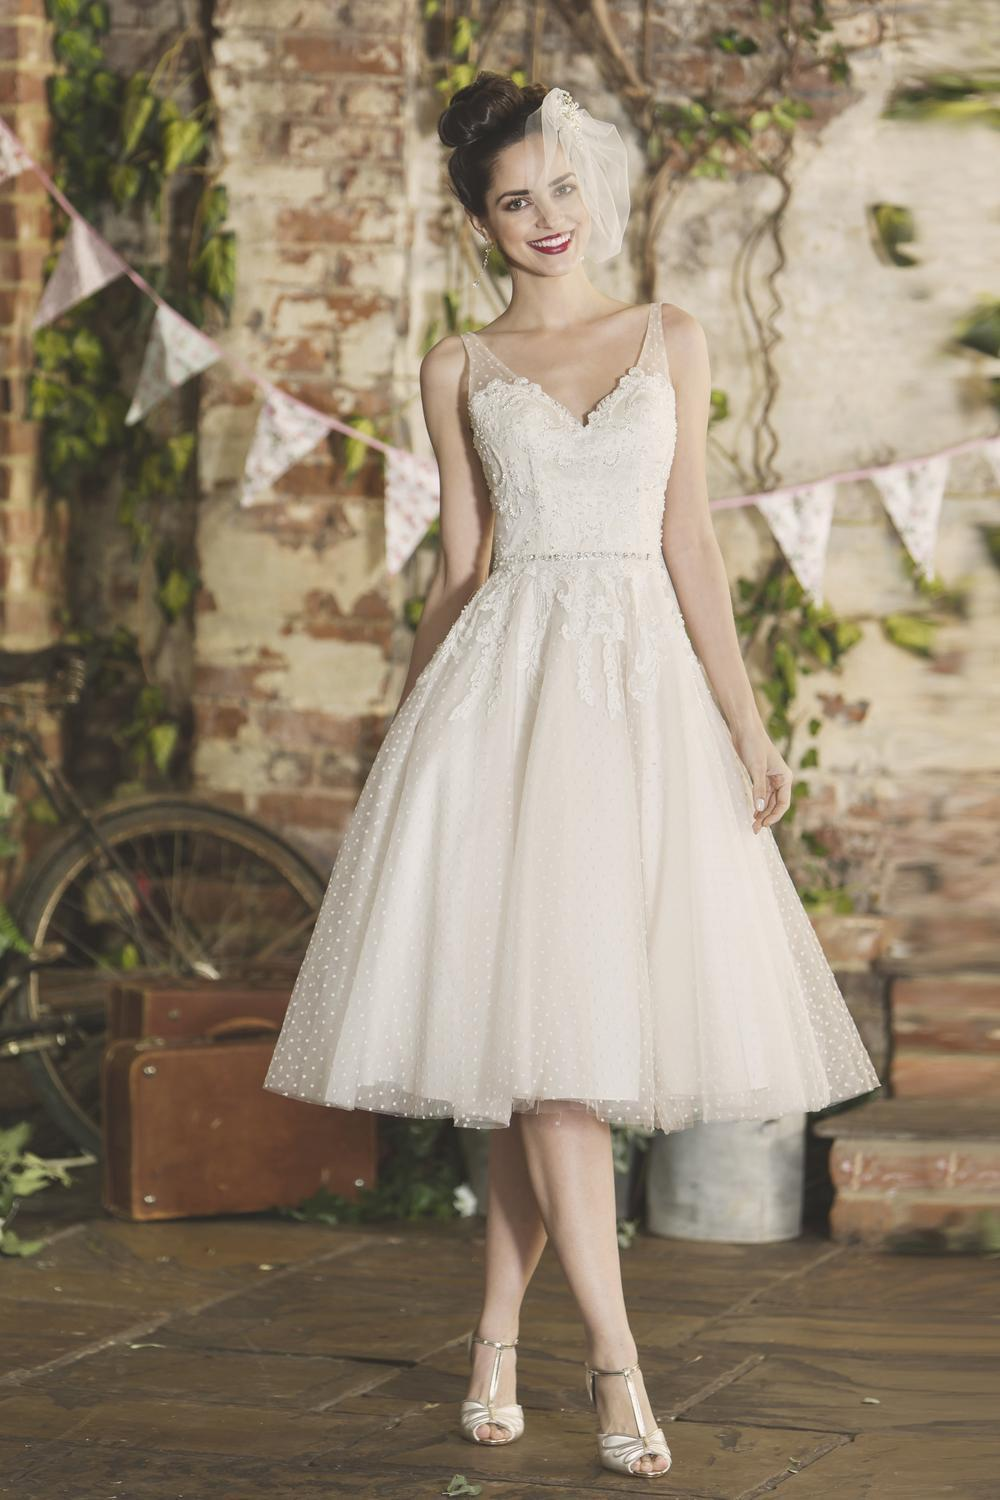 374414ed691f Vintage inspired wedding dress with a sweetheart bodice by True ...